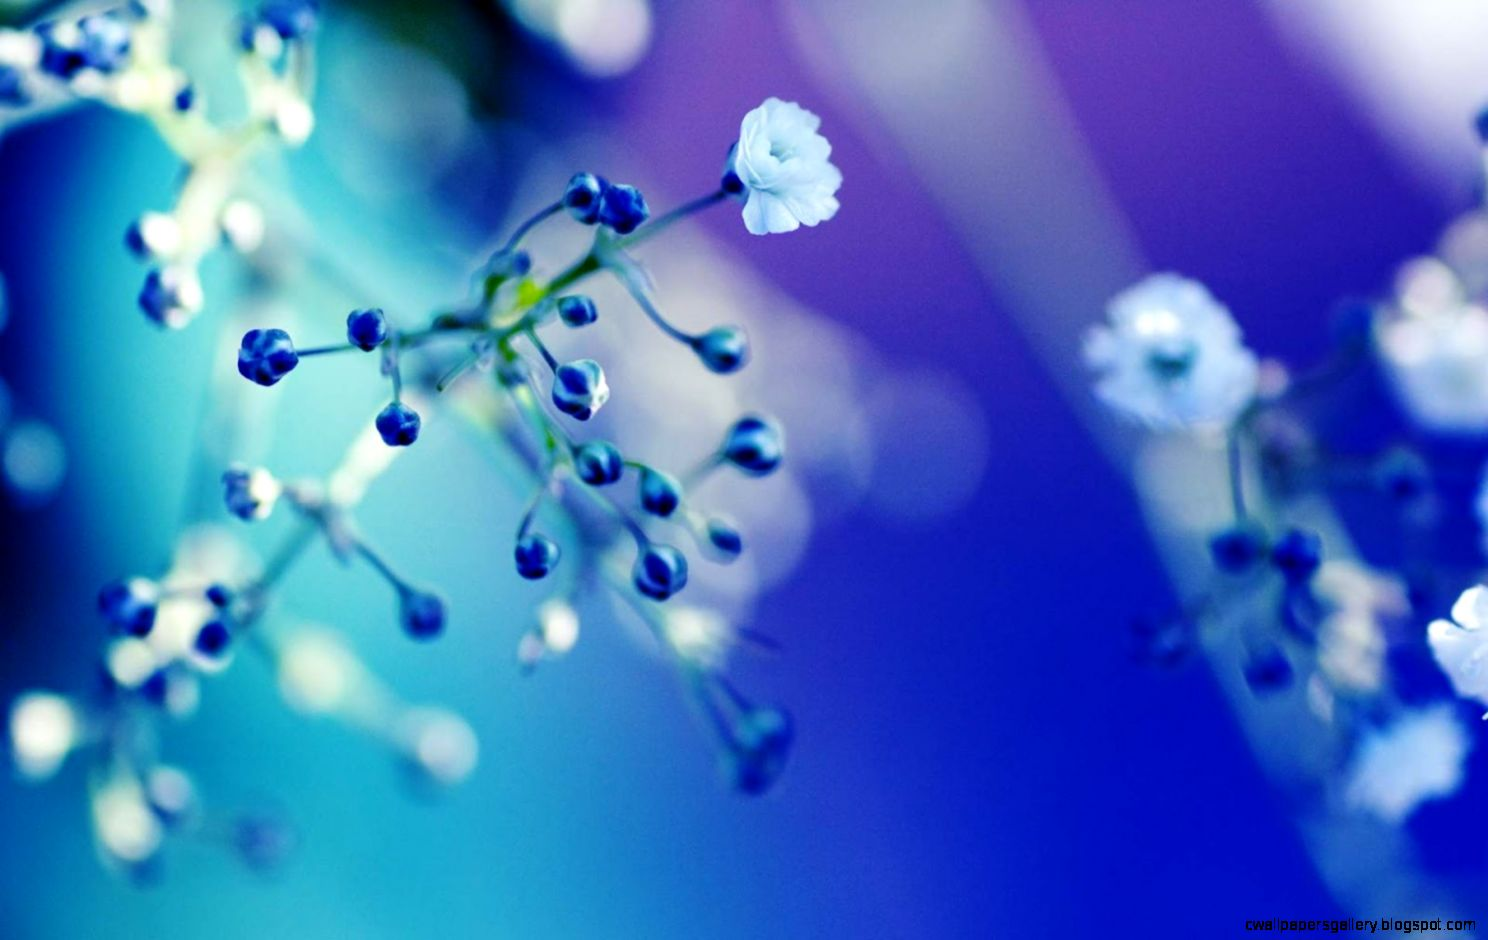 Blue Flowers Desktop Wallpaper   WallpaperSafari